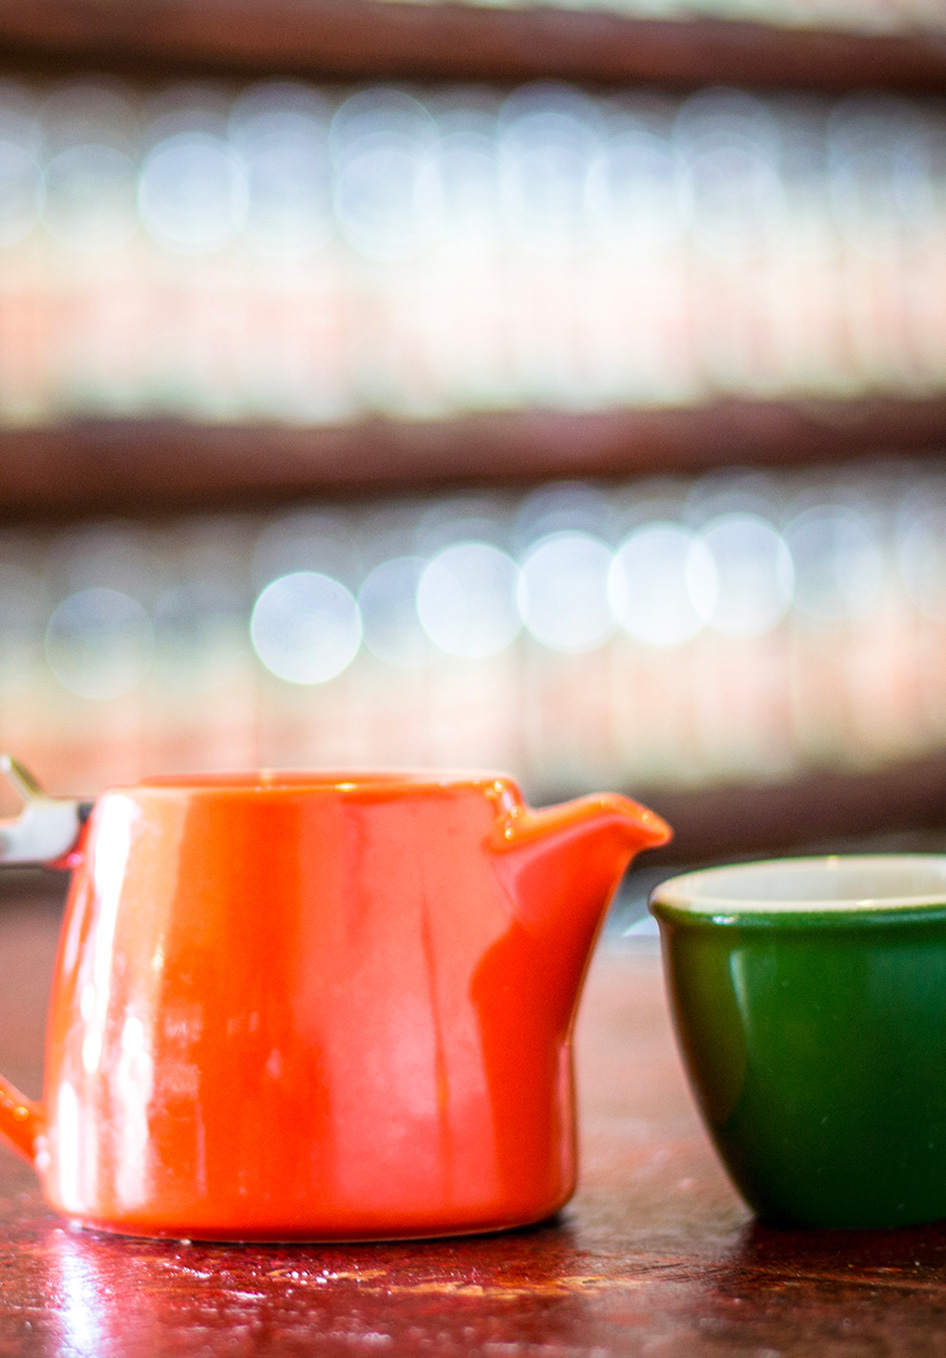 The First and Oldest - Be assured that we source only the finest quality teas from around the world and our tea blends are freshly made on site in China Alley. Relax and enjoy a tea in our tea room, take our loose leaf tea home, or order online!Learn More